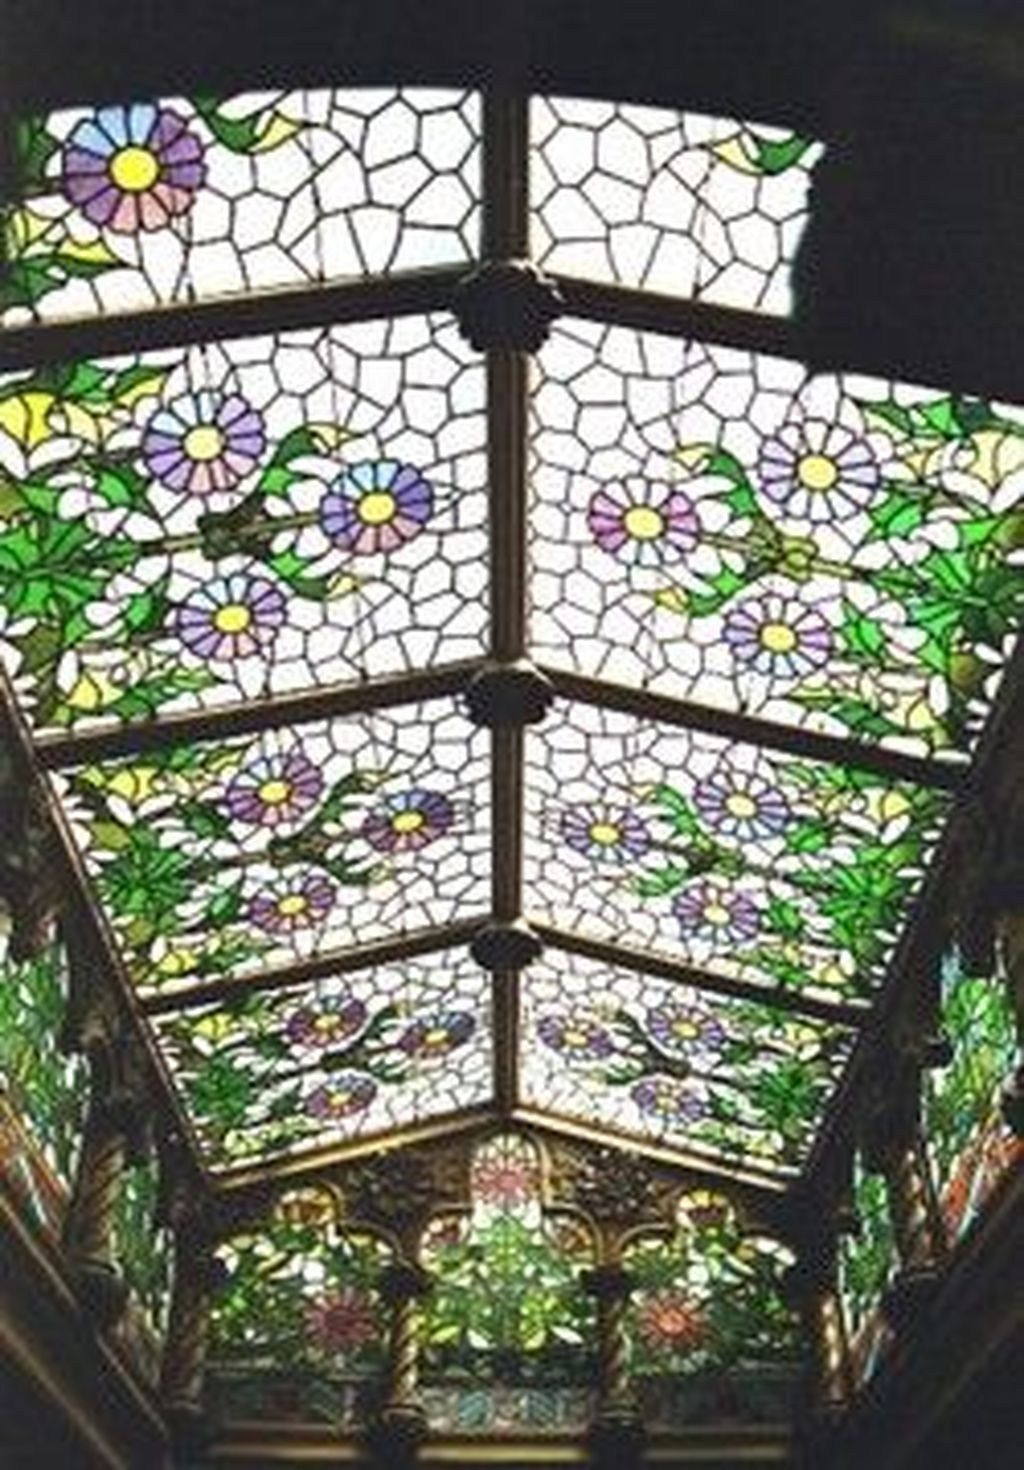 48 Luxury Glass Ceiling Design Ideas In 2020 Glass Roof Ceiling Design Stained Glass